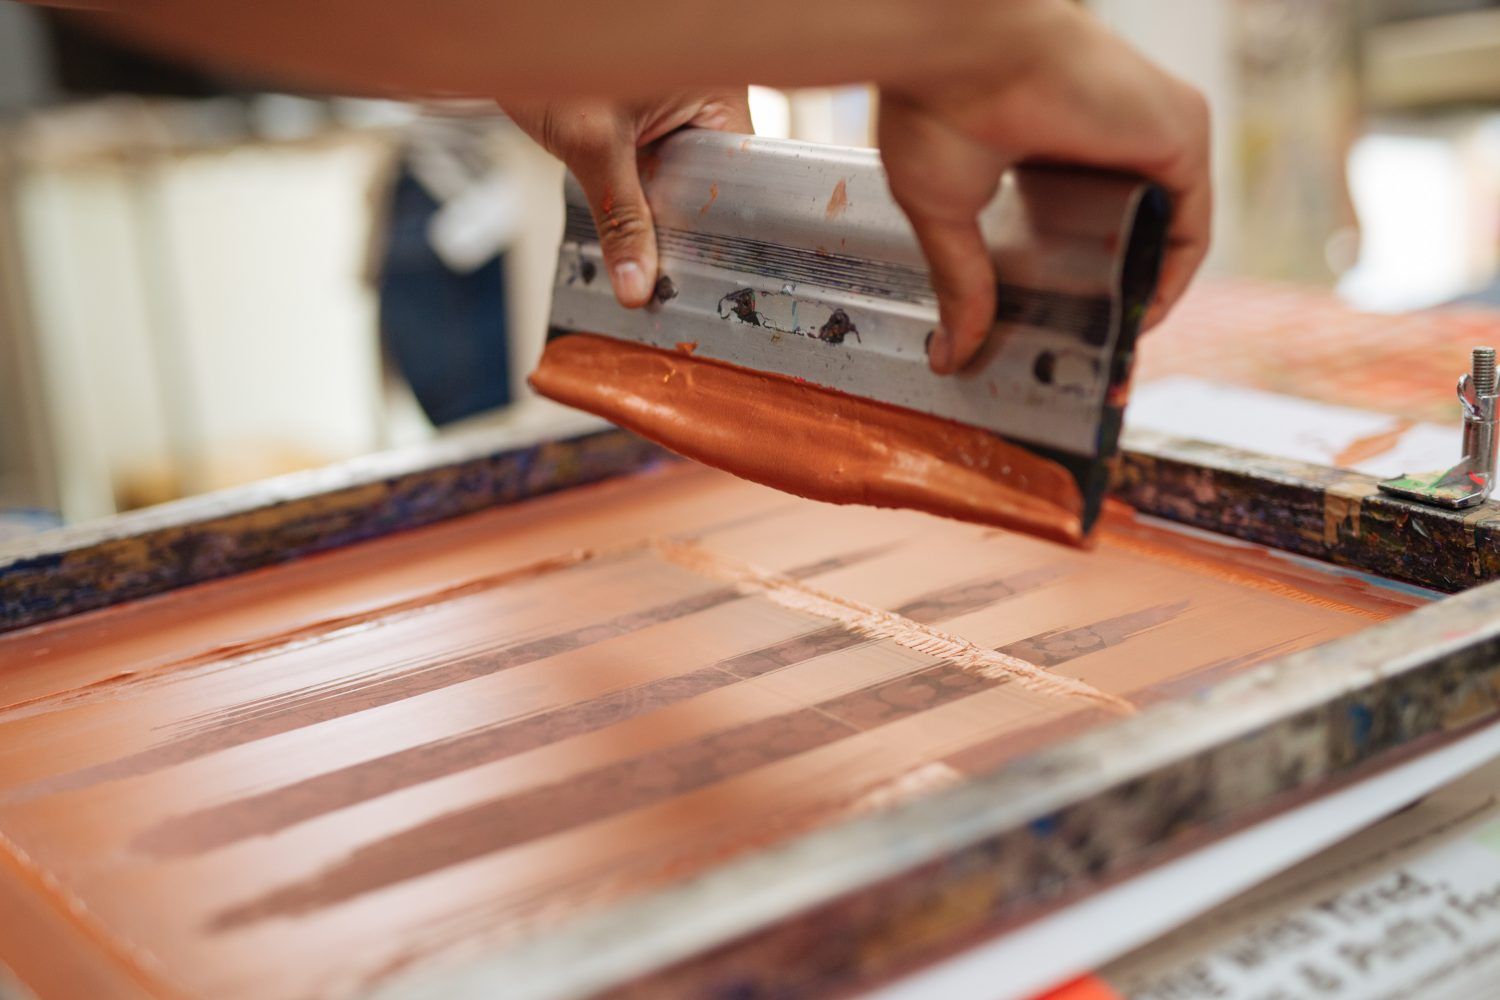 ONE69A / Fabric Screen Printing / Full Day Workshop